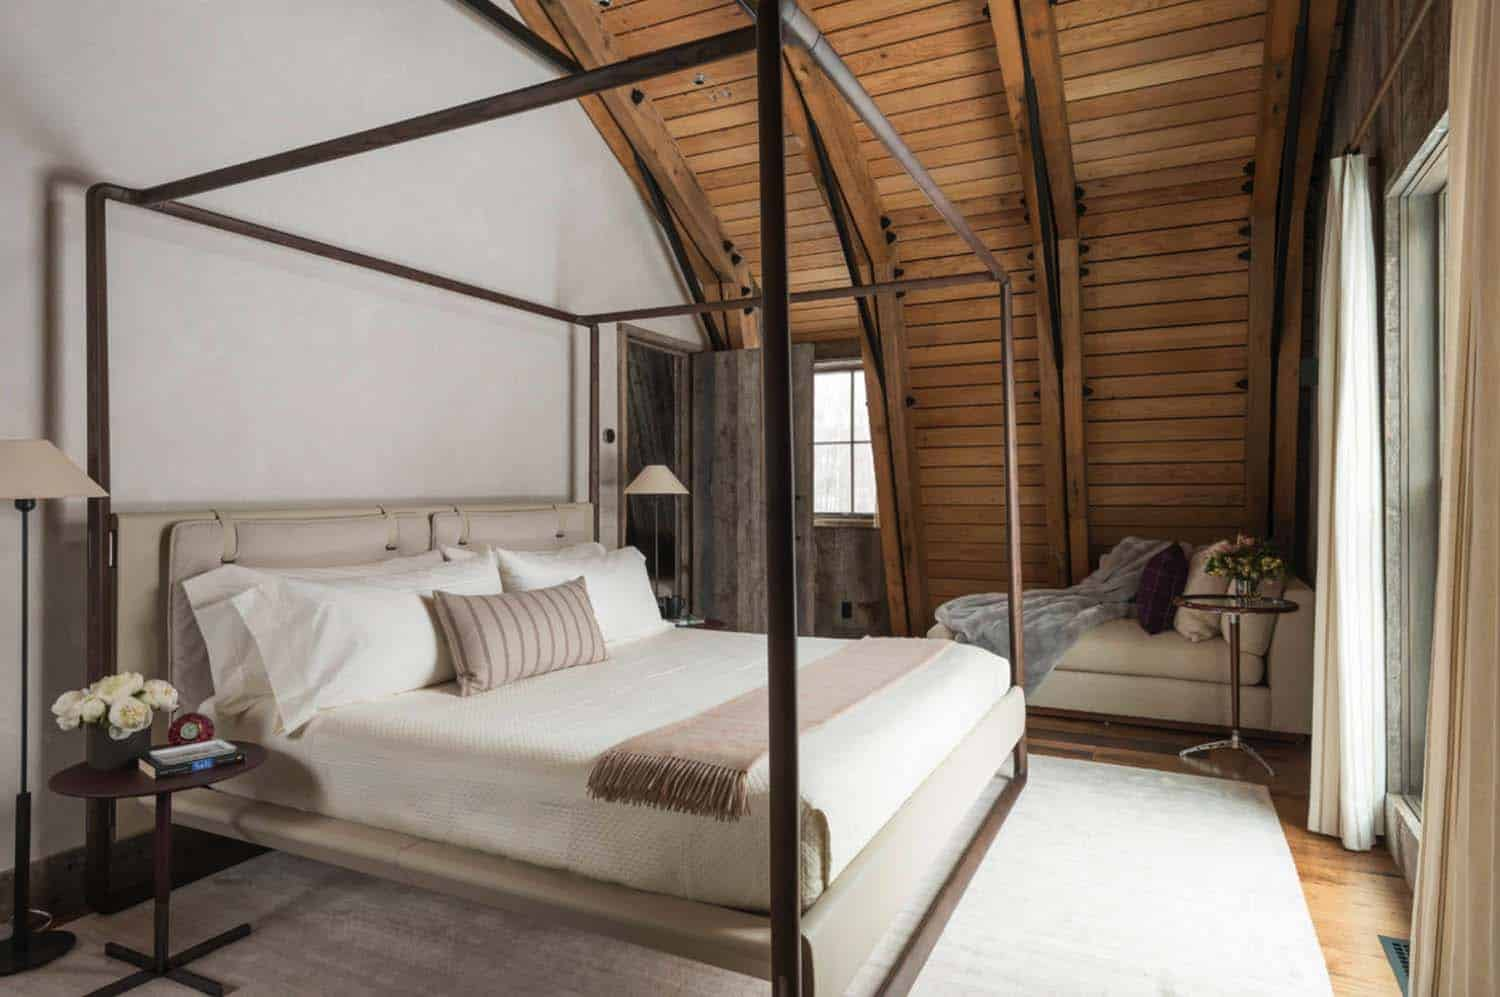 Barn Guest House-Carney Logan Burke Architects-14-1 Kindesign